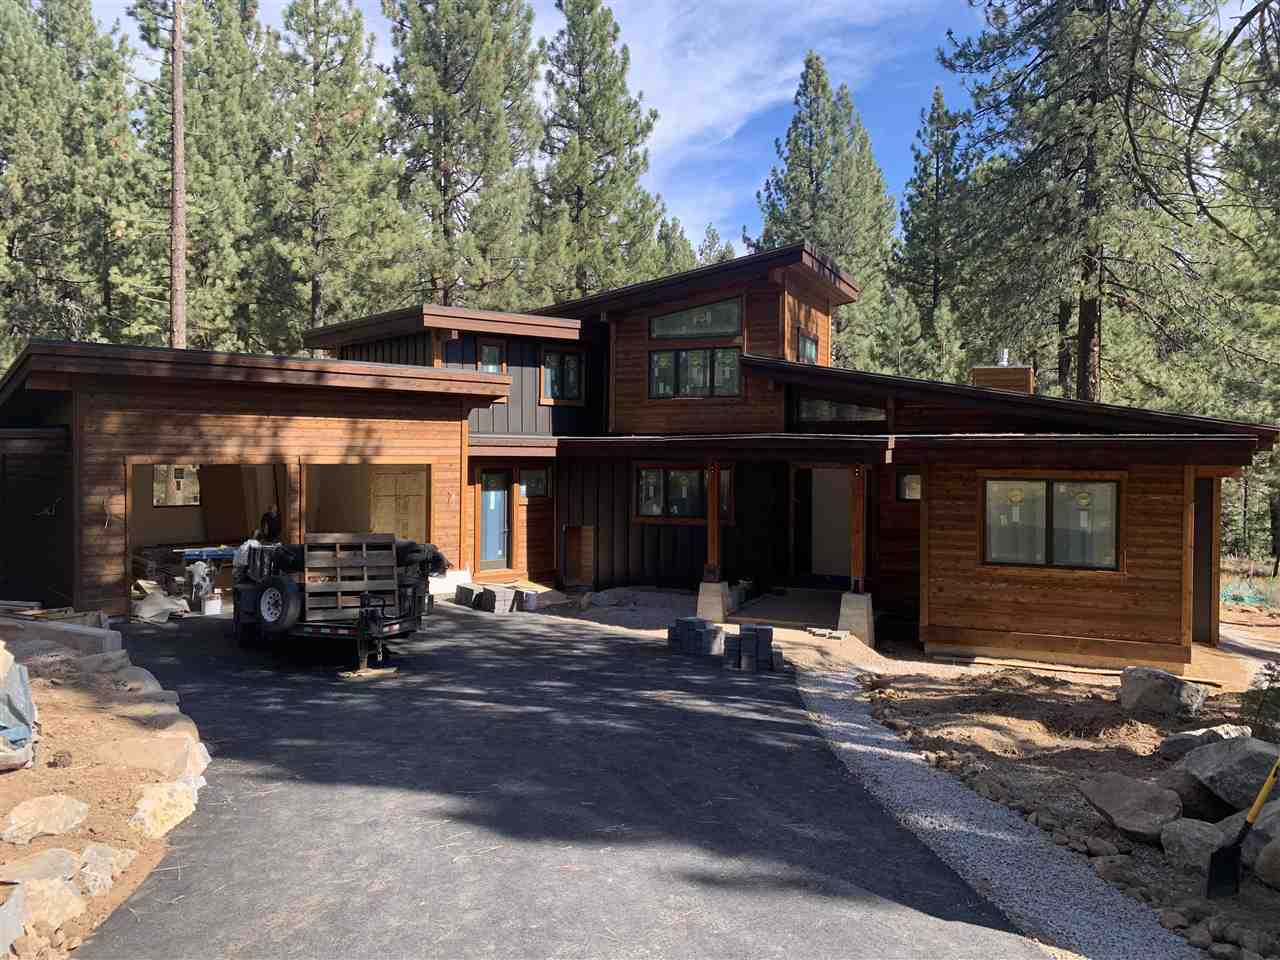 Image for 11229 China Camp Road, Truckee, CA 96161